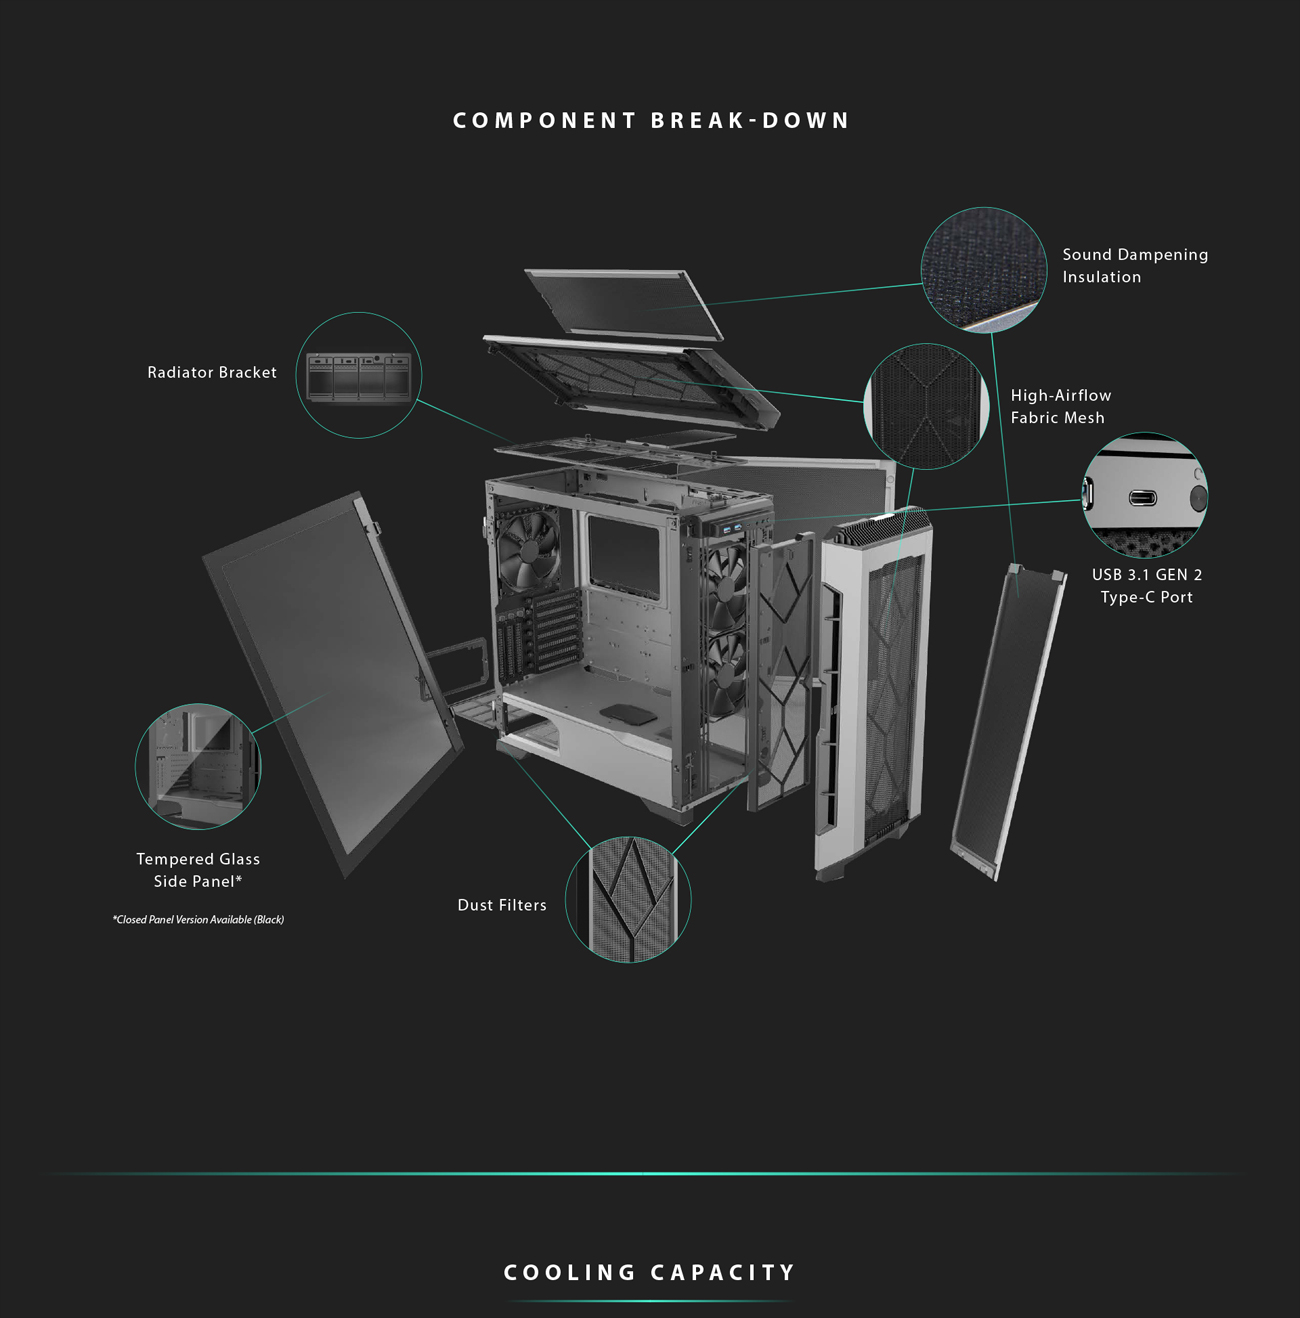 Component Breakdown Image Showing All the Pieces that Make This Case